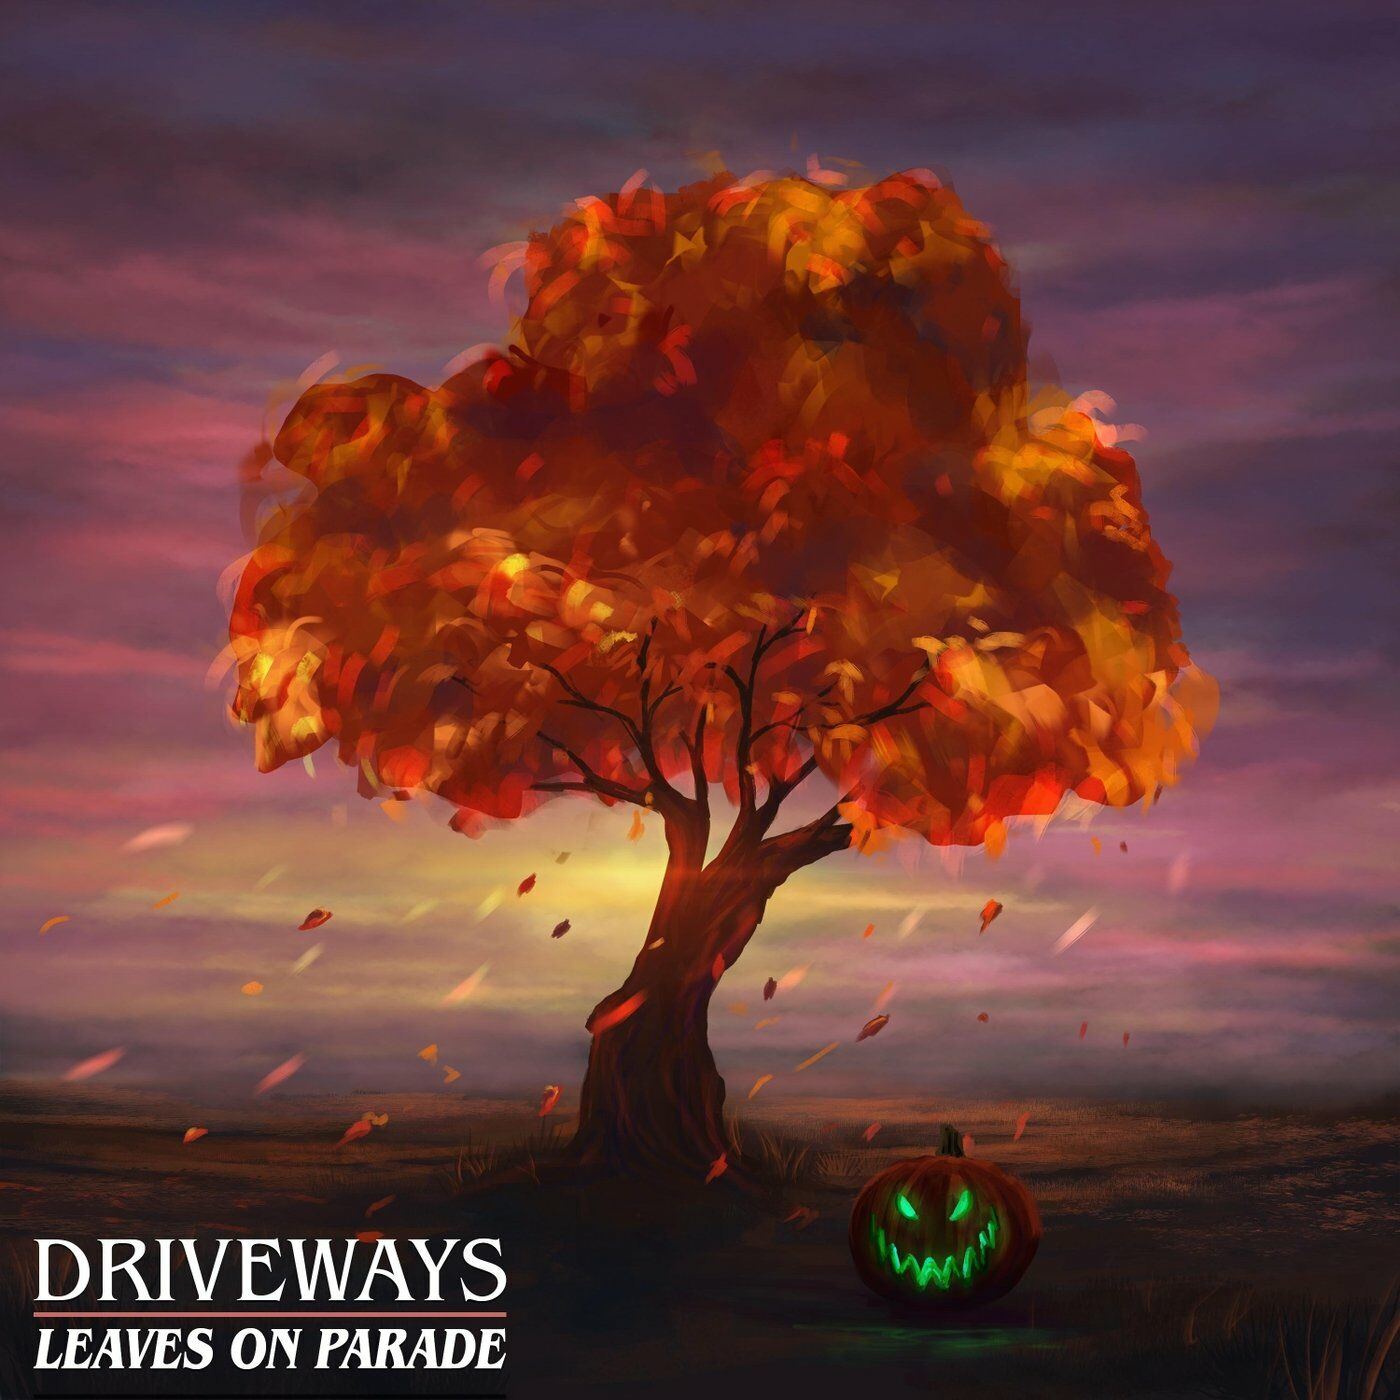 Driveways - Leaves on Parade [single] (2020)